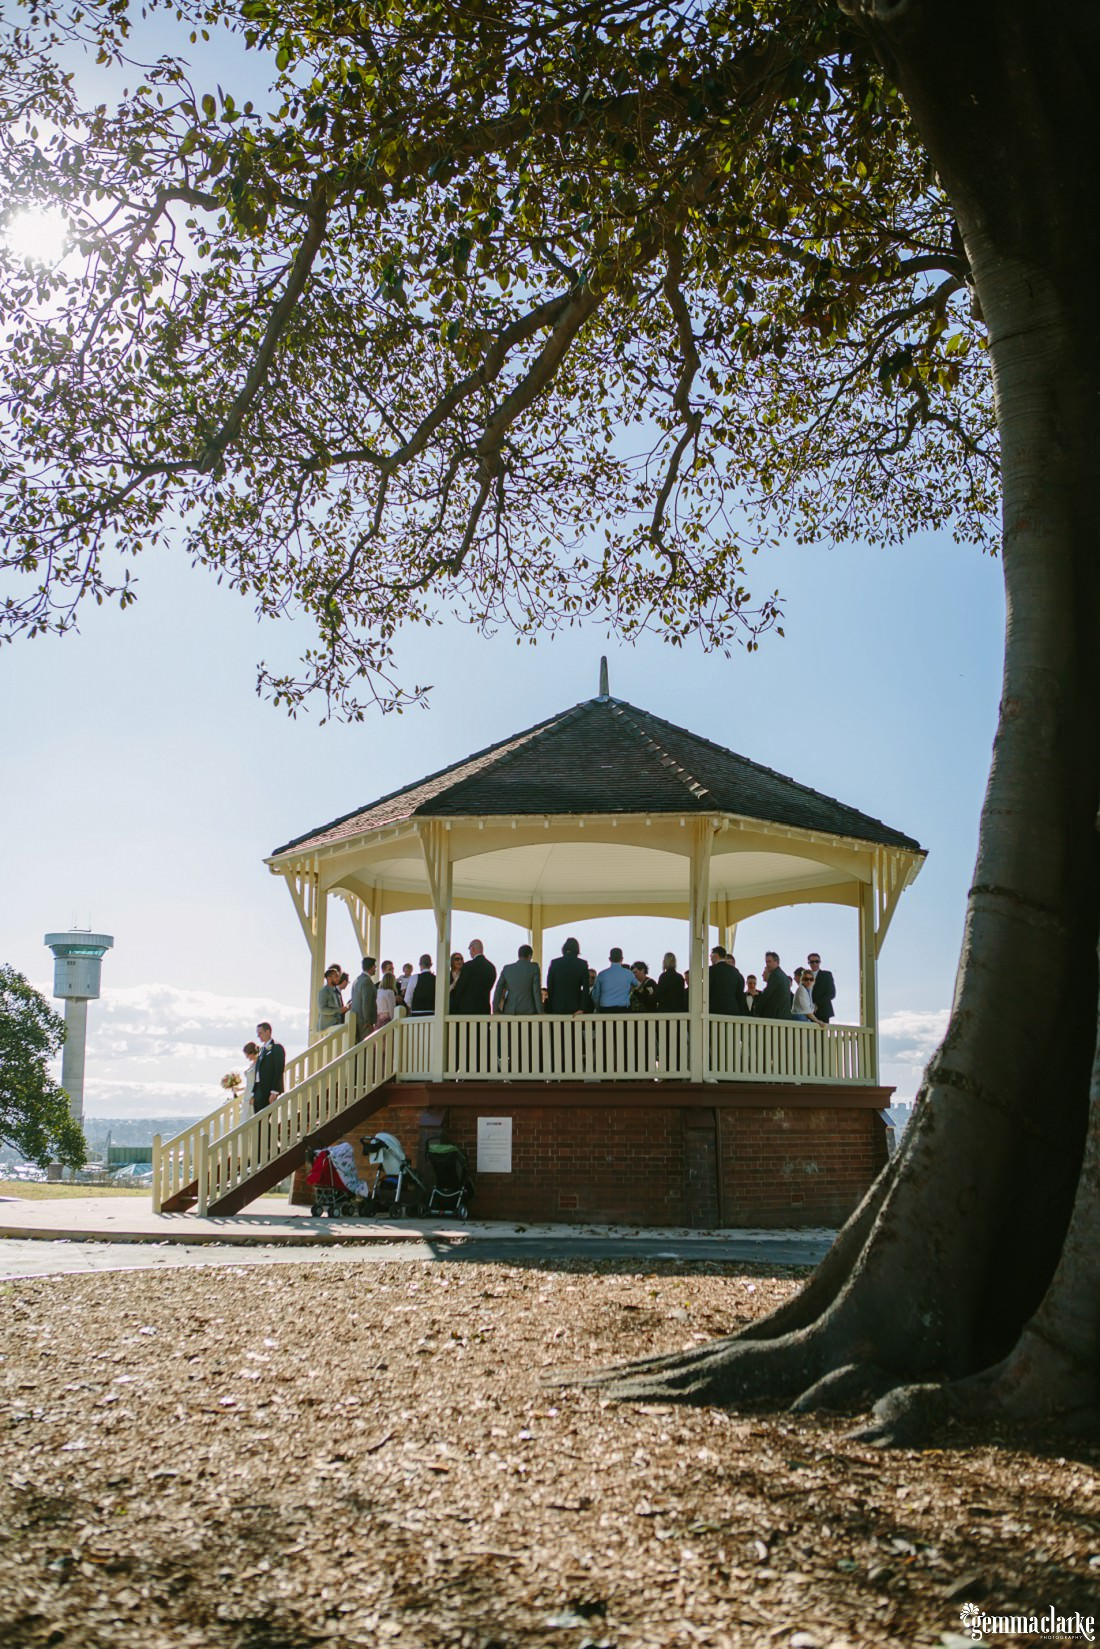 A bride and groom walk down the hill of the gazebo at Observatory Hill in Sydney after their wedding ceremony